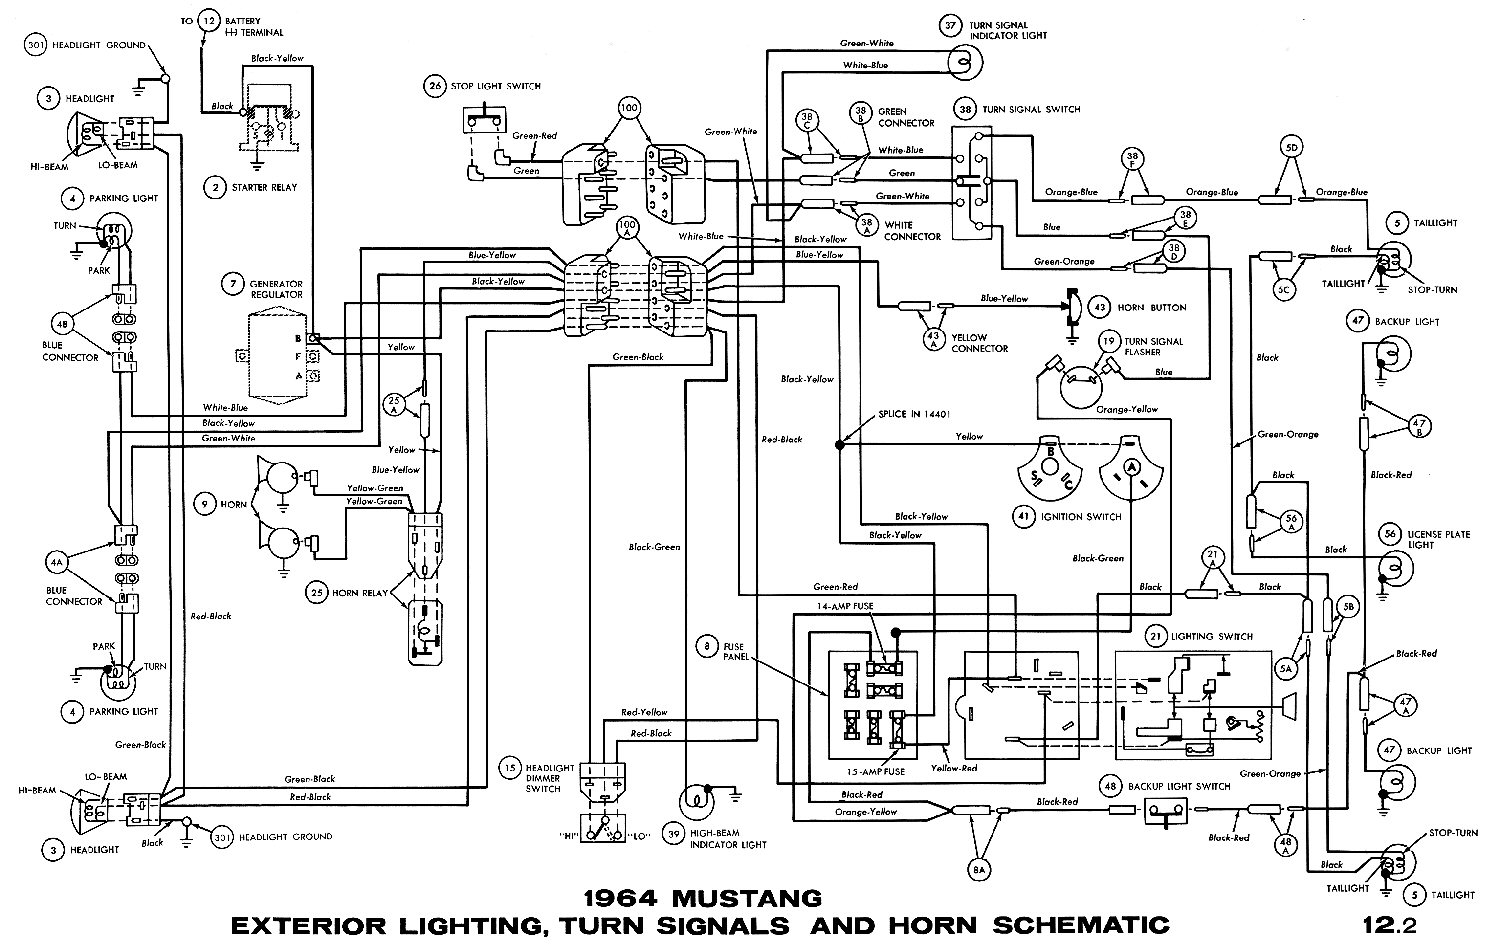 1972 Ford Mustang Wiring Diagram Switch Factory Colors 1970 Ignition Schemes Nova In Color